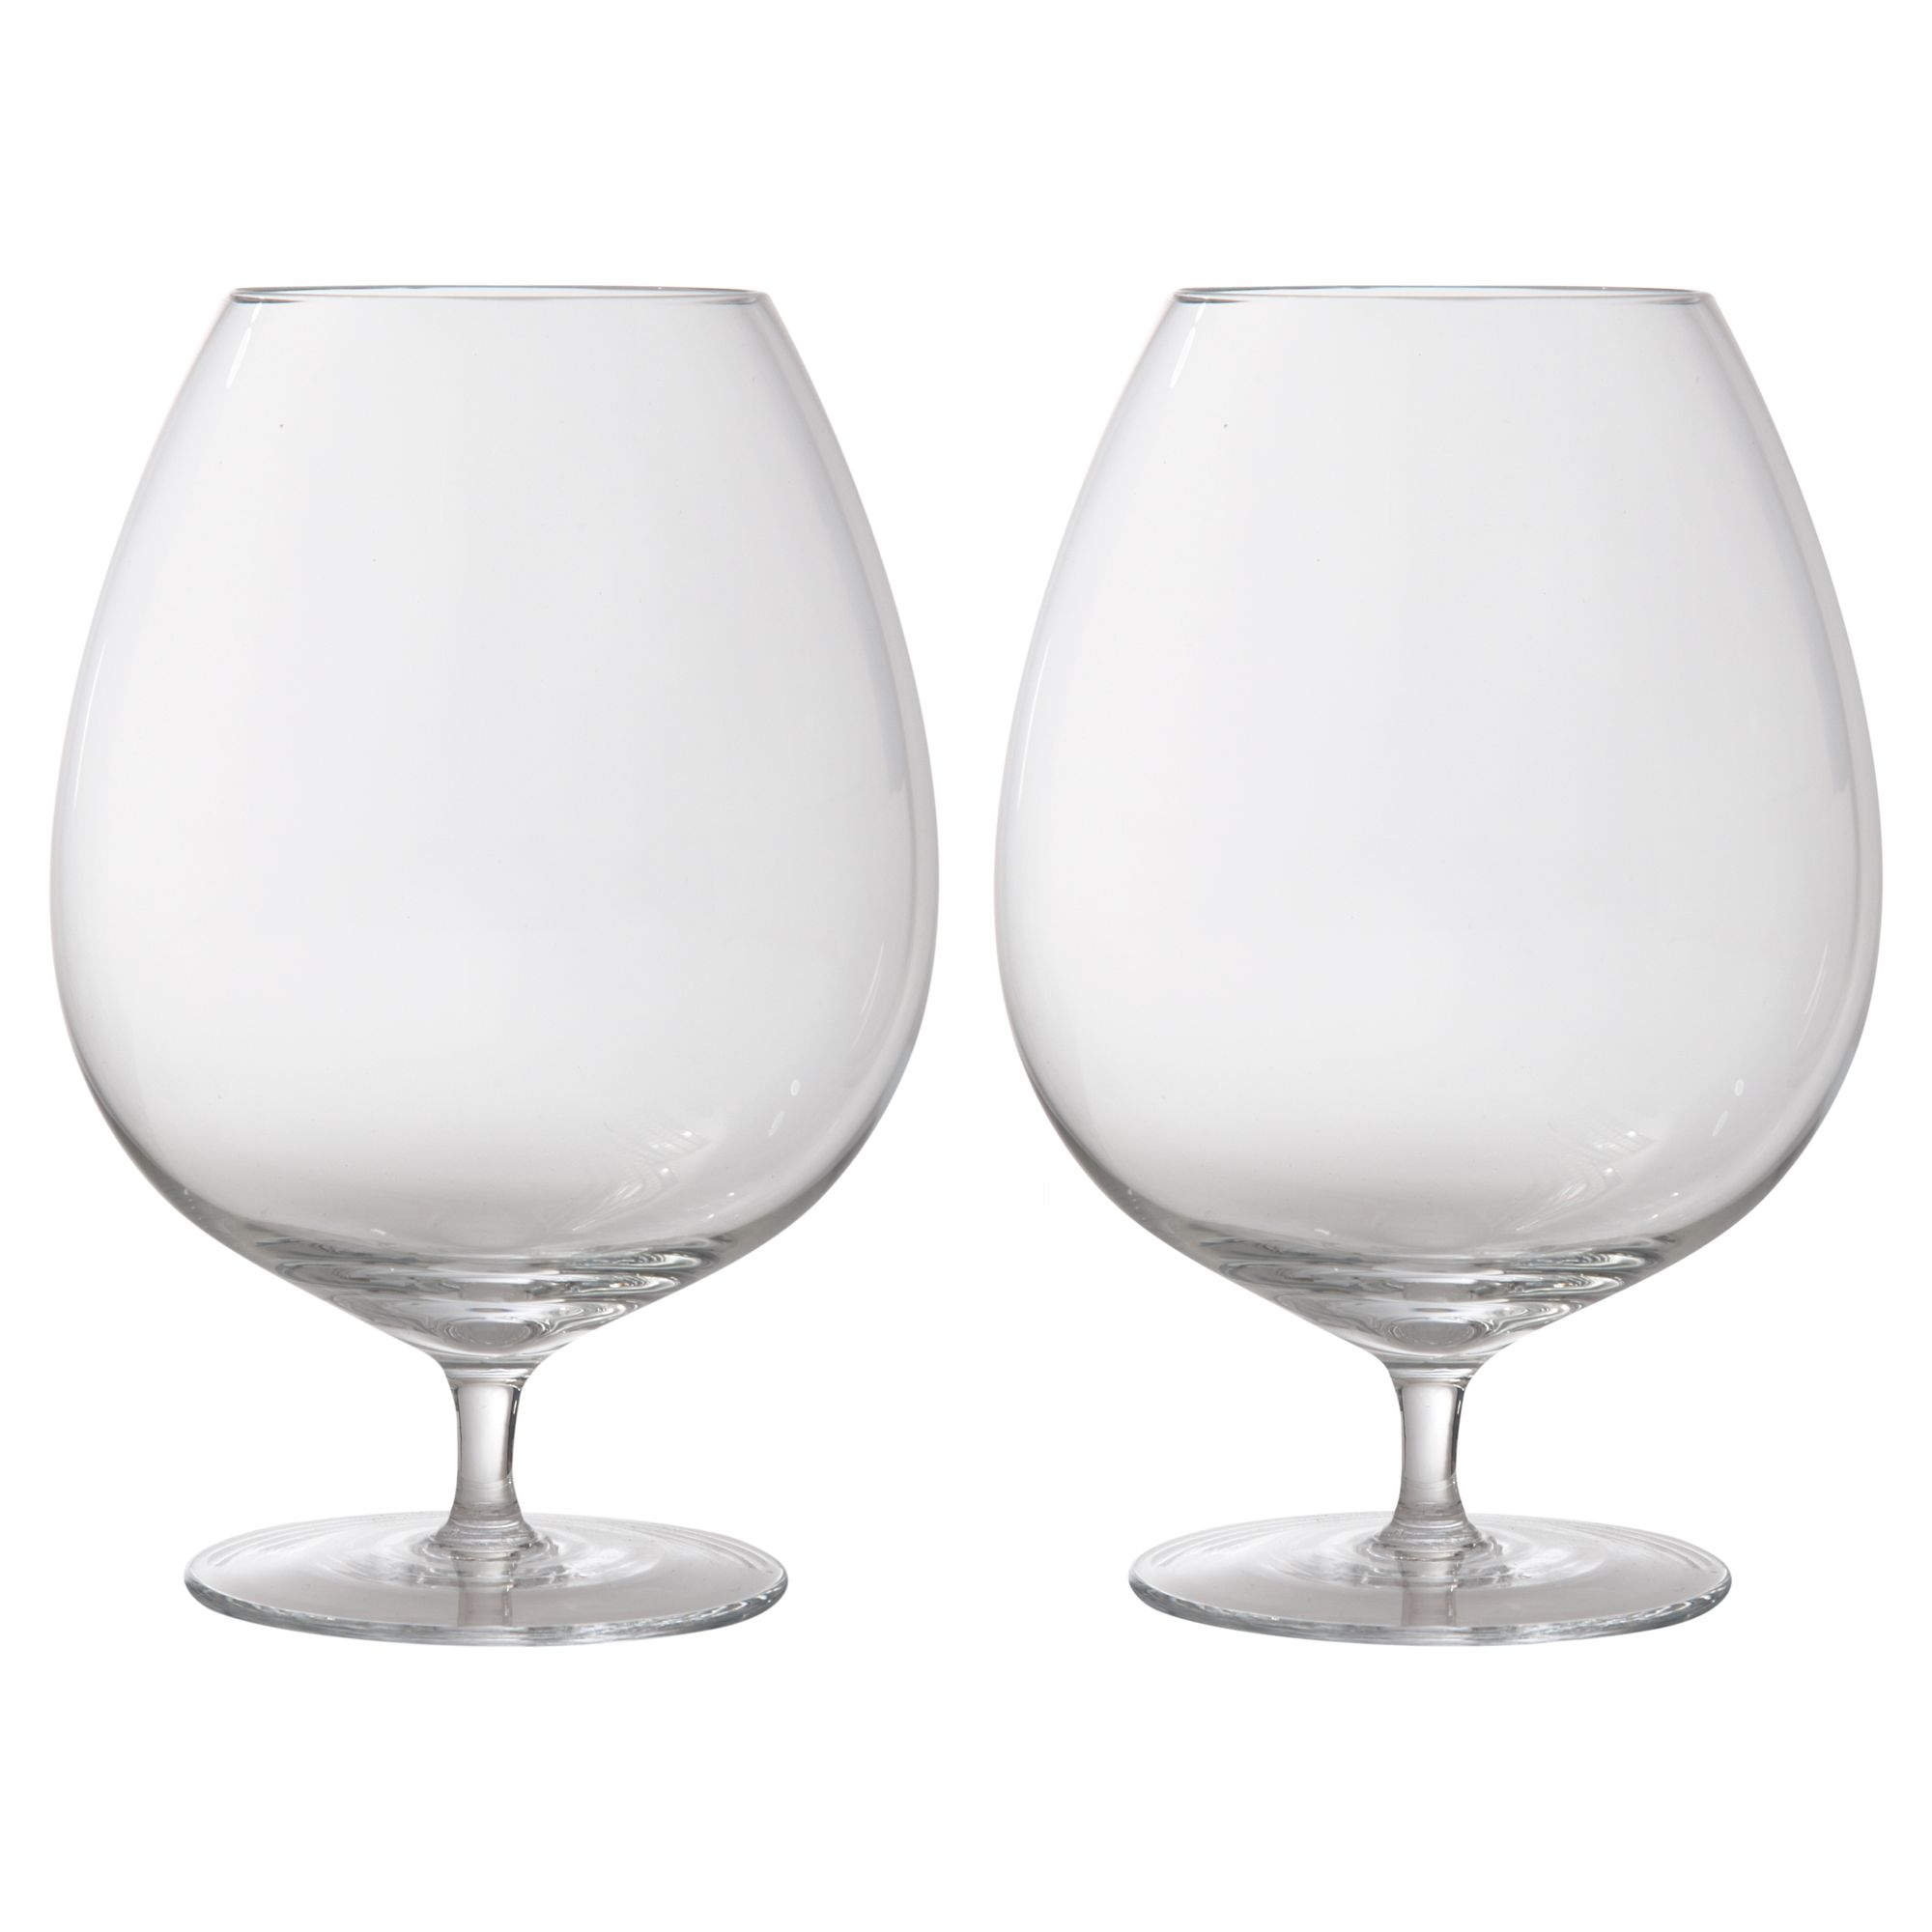 Bar collection brandy glasses, set of 2